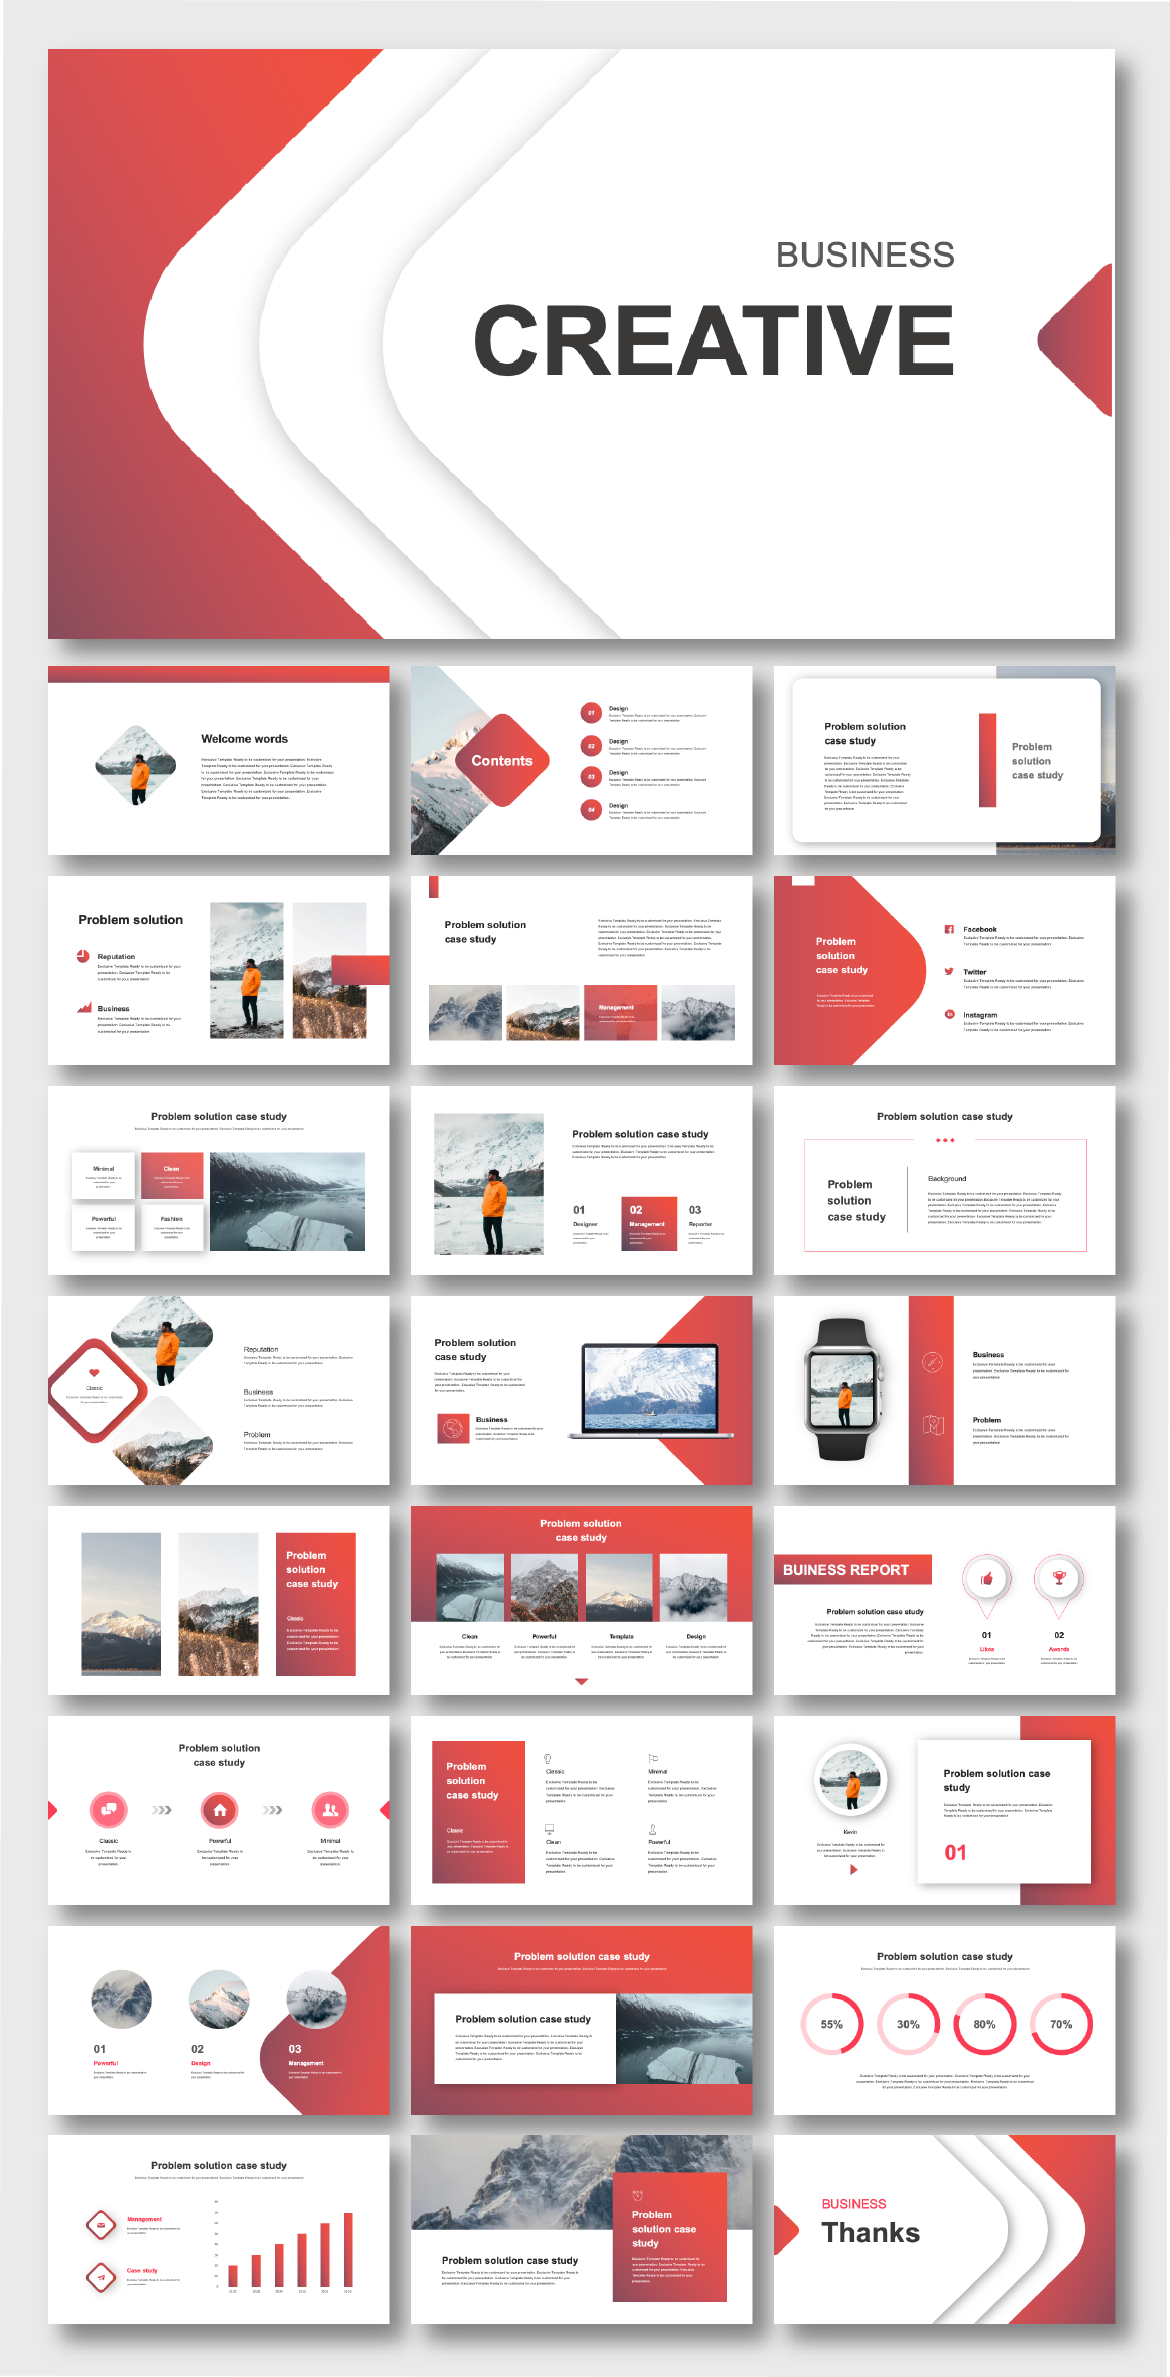 Beautiful Red Business Creative Presentation Template – Original and high quality PowerPoint Templates download